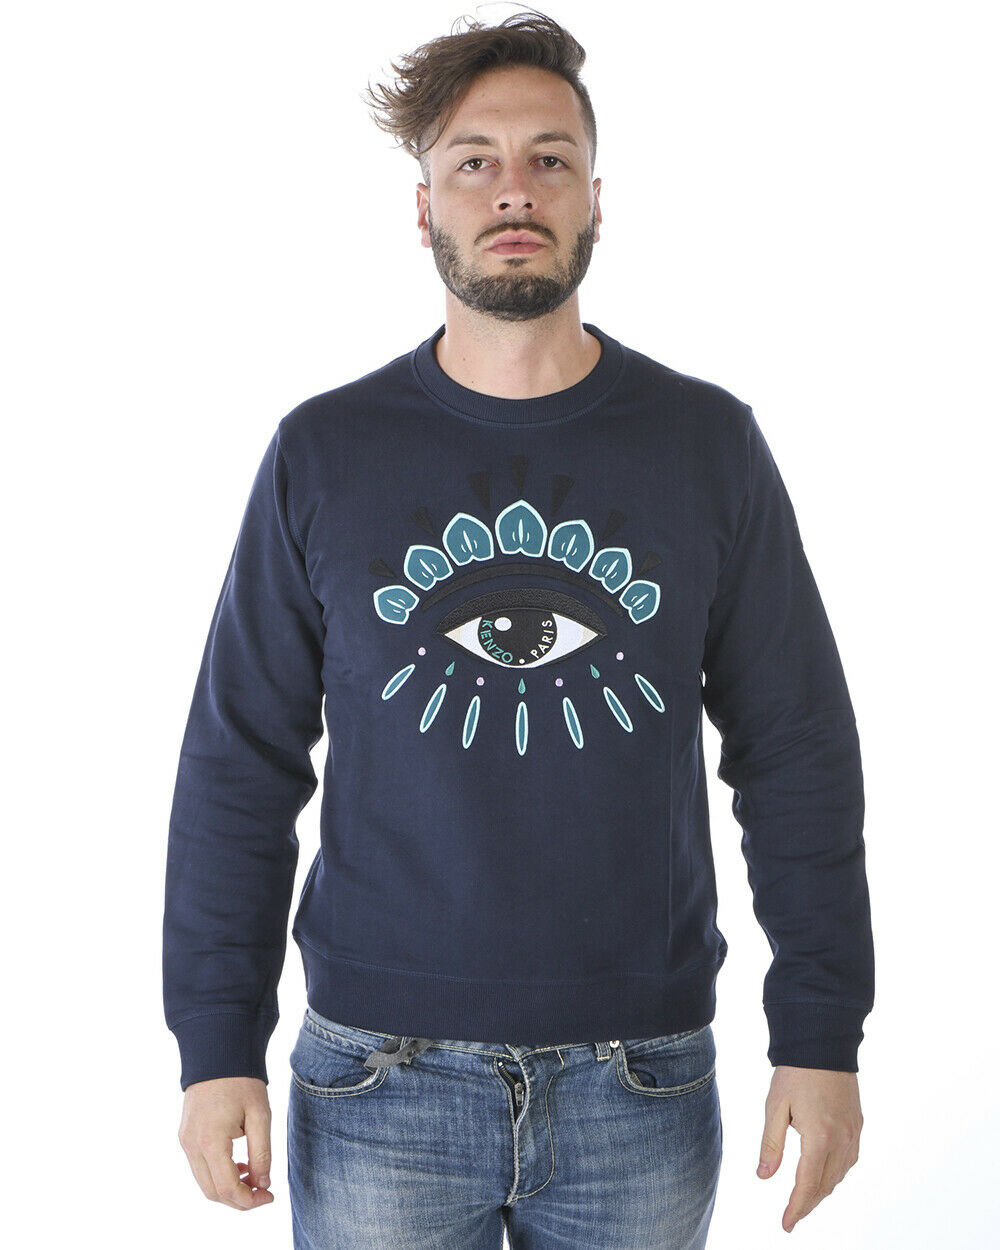 Kenzo Sweatshirt Hoodie EYE Cotton Man bluee 4XC5SW055 78B Sz.L MAKE OFFER